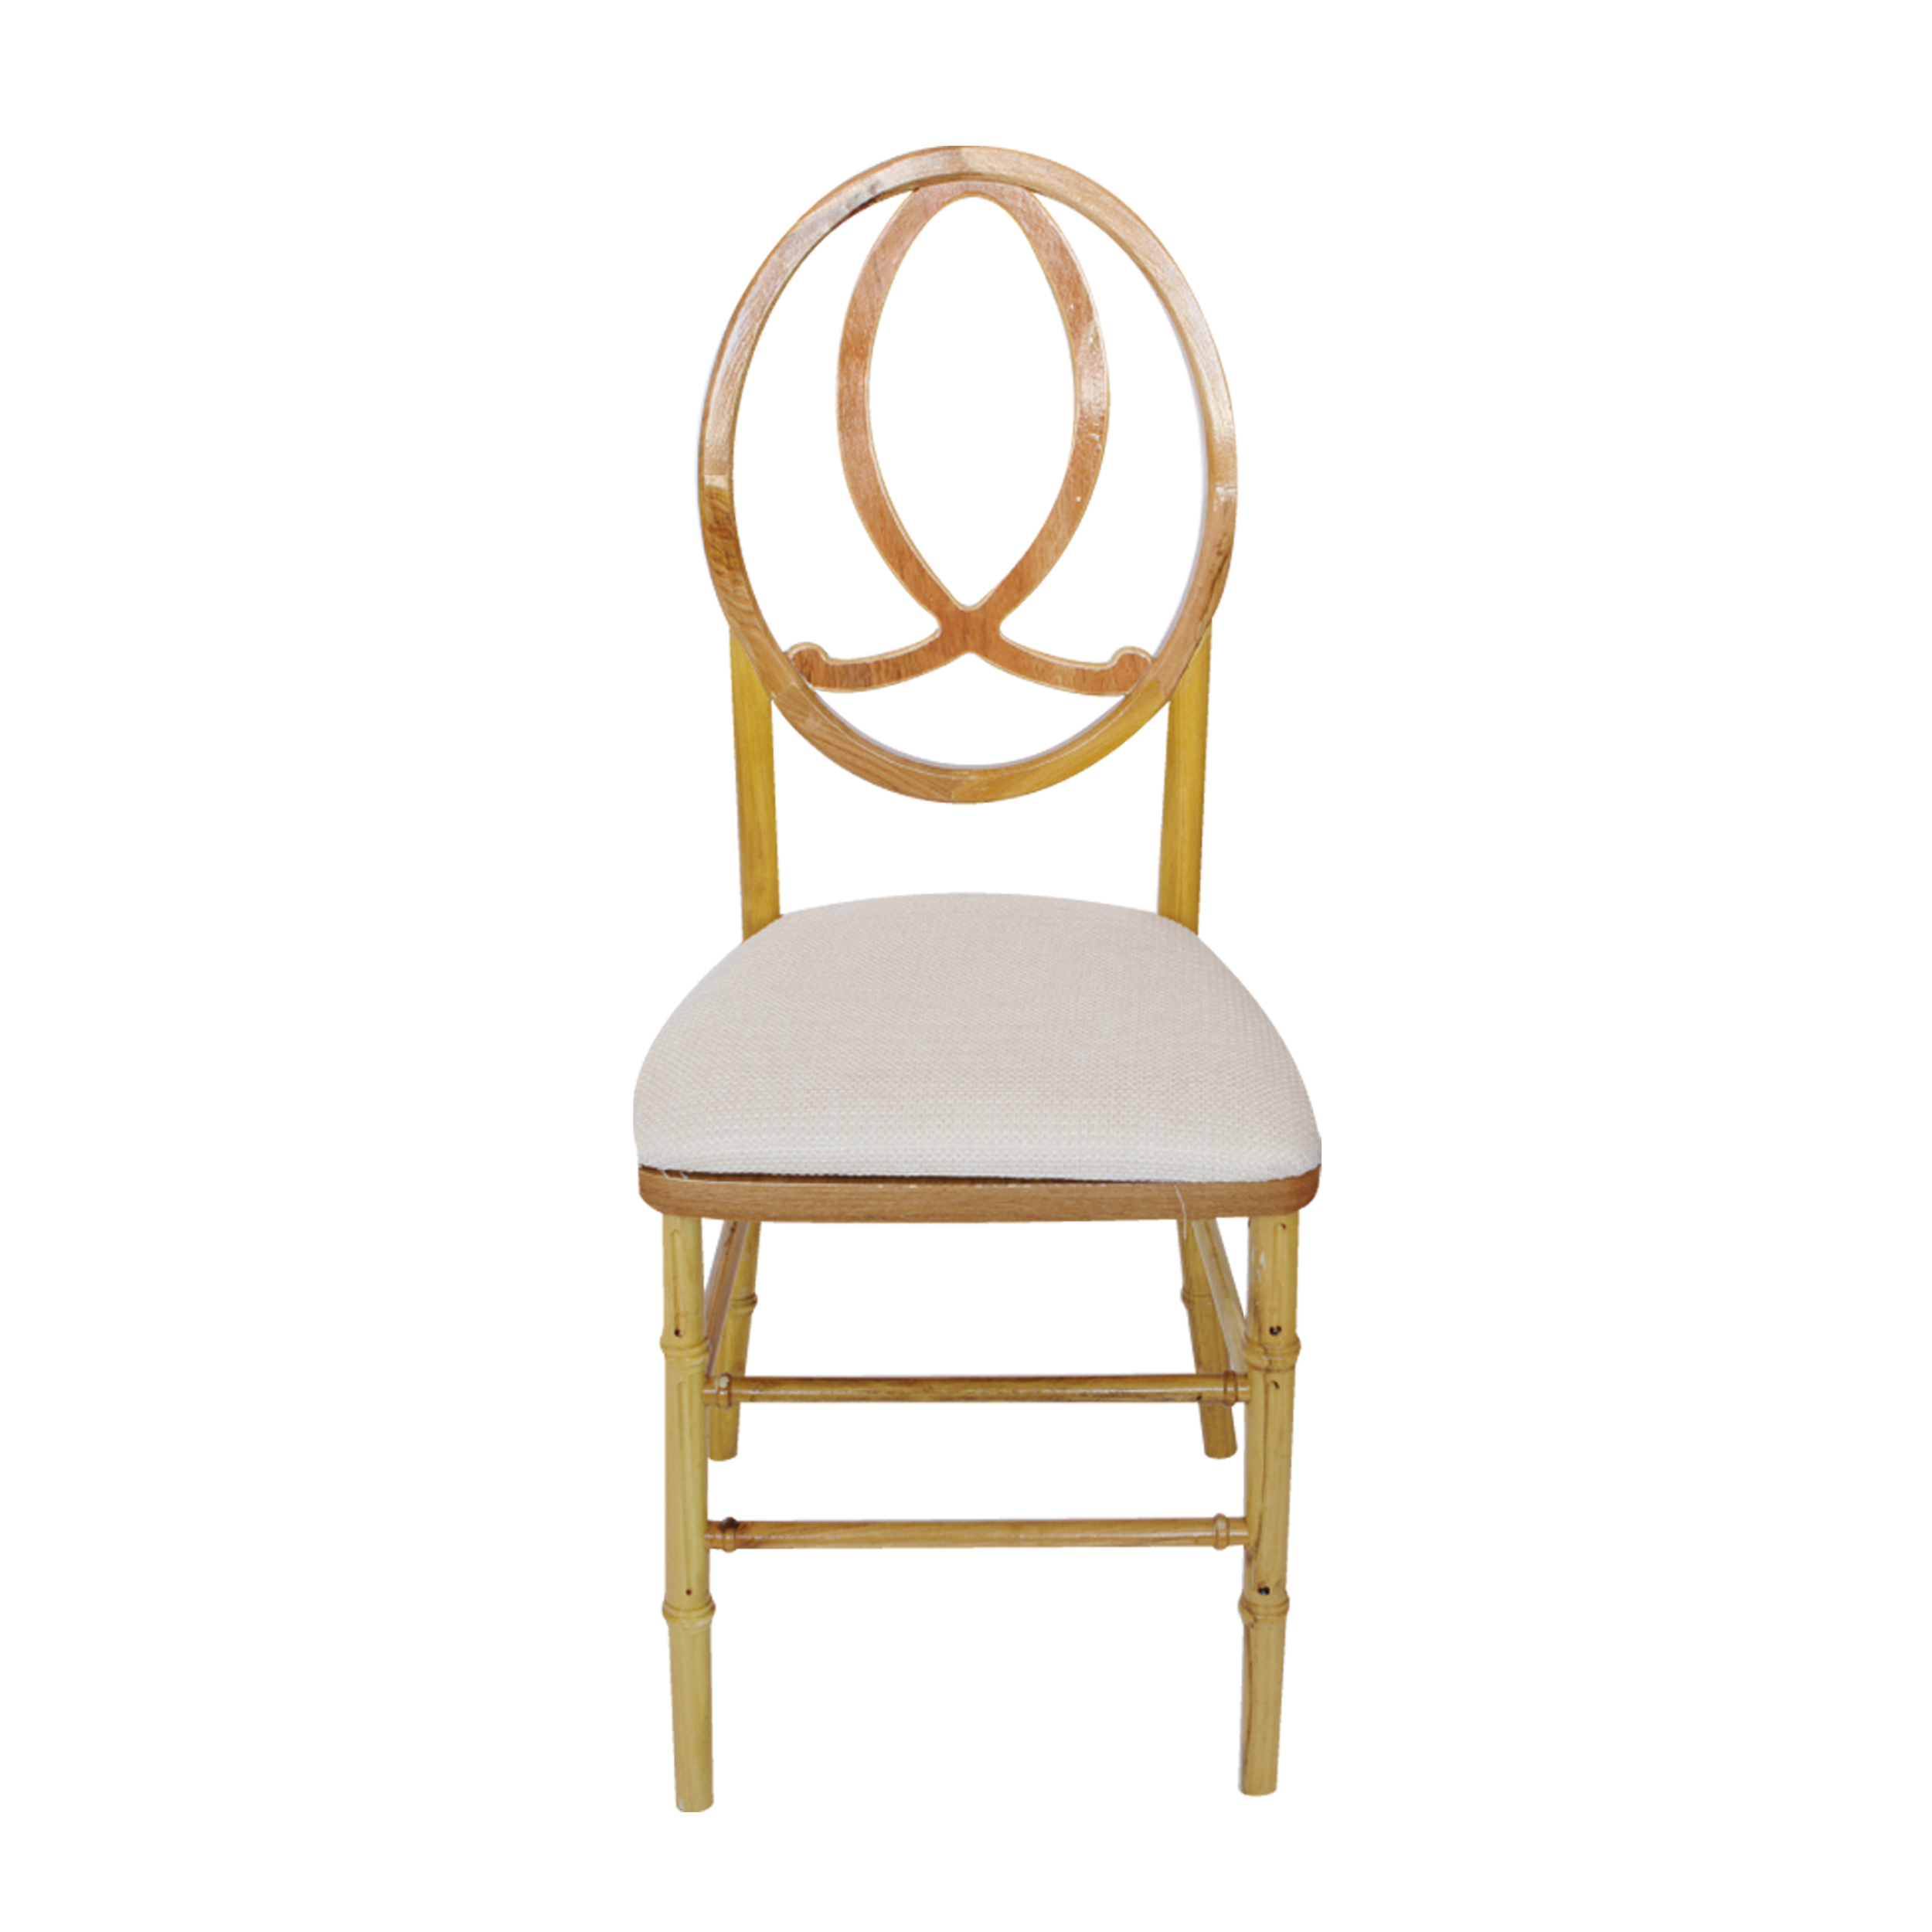 INFINITY CHAIR NATURAL — HENSLEY EVENT RESOURCES